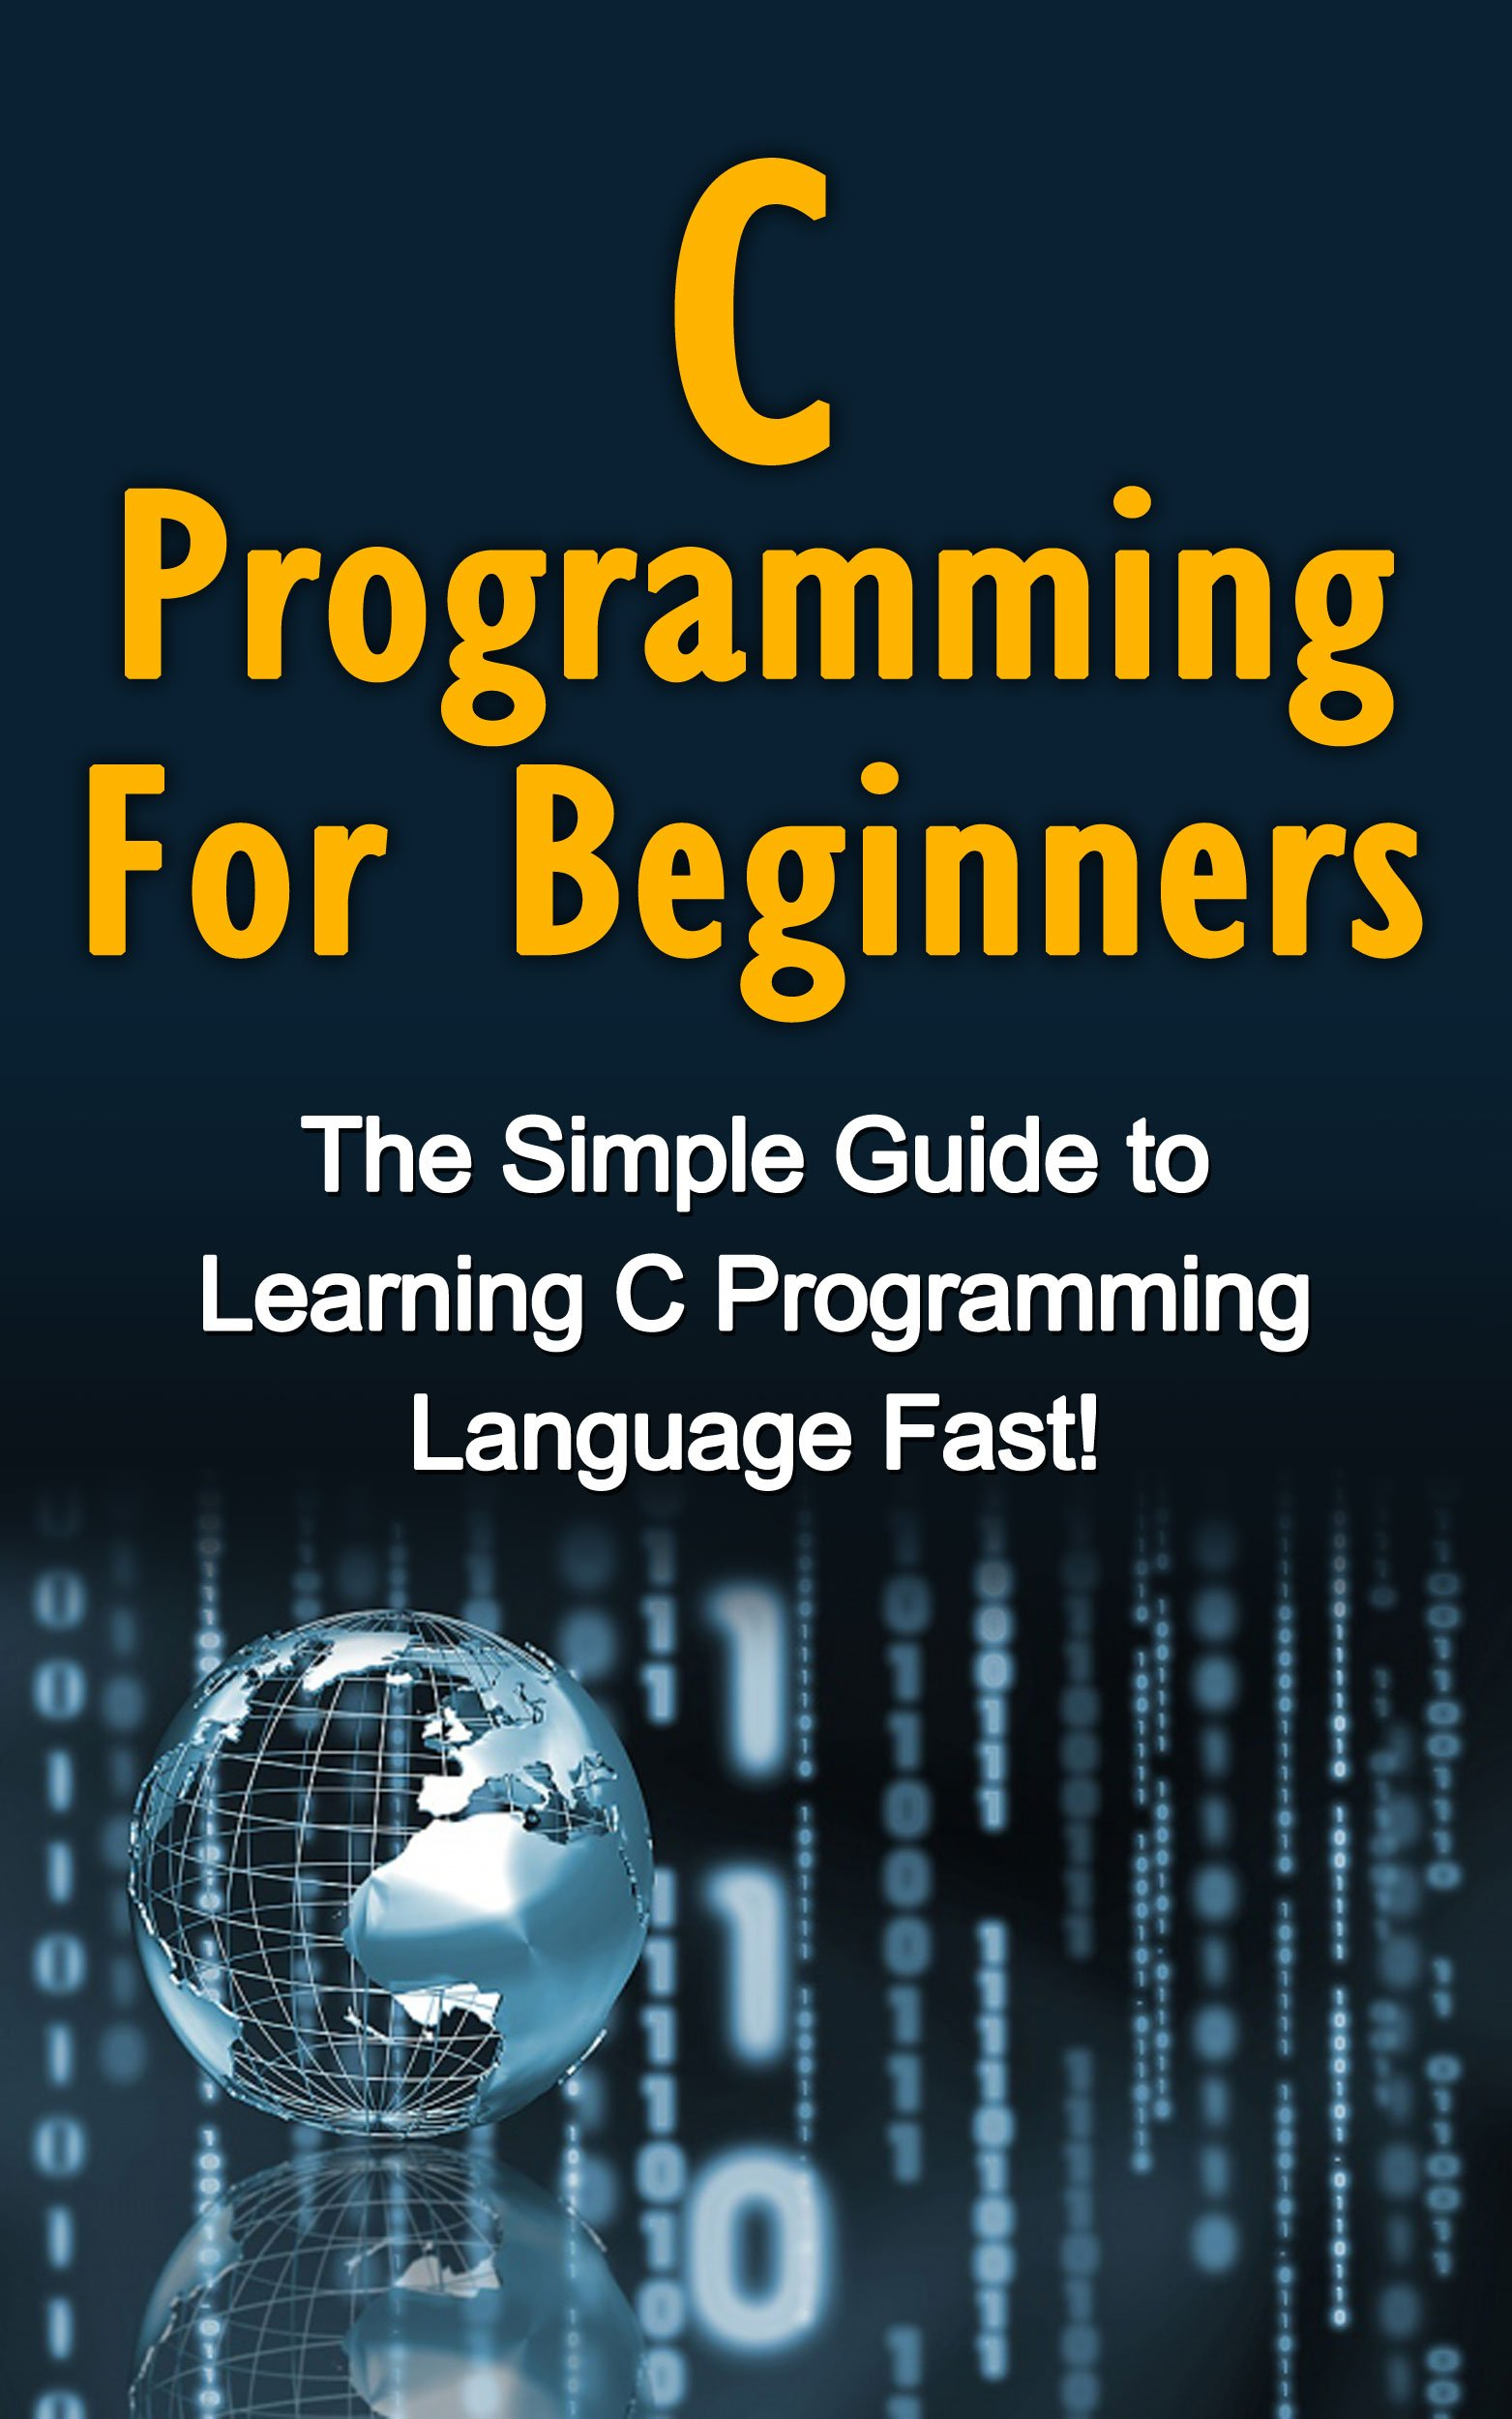 C Programming For Beginners: The Simple Guide to Learning C Programming Language Fast!